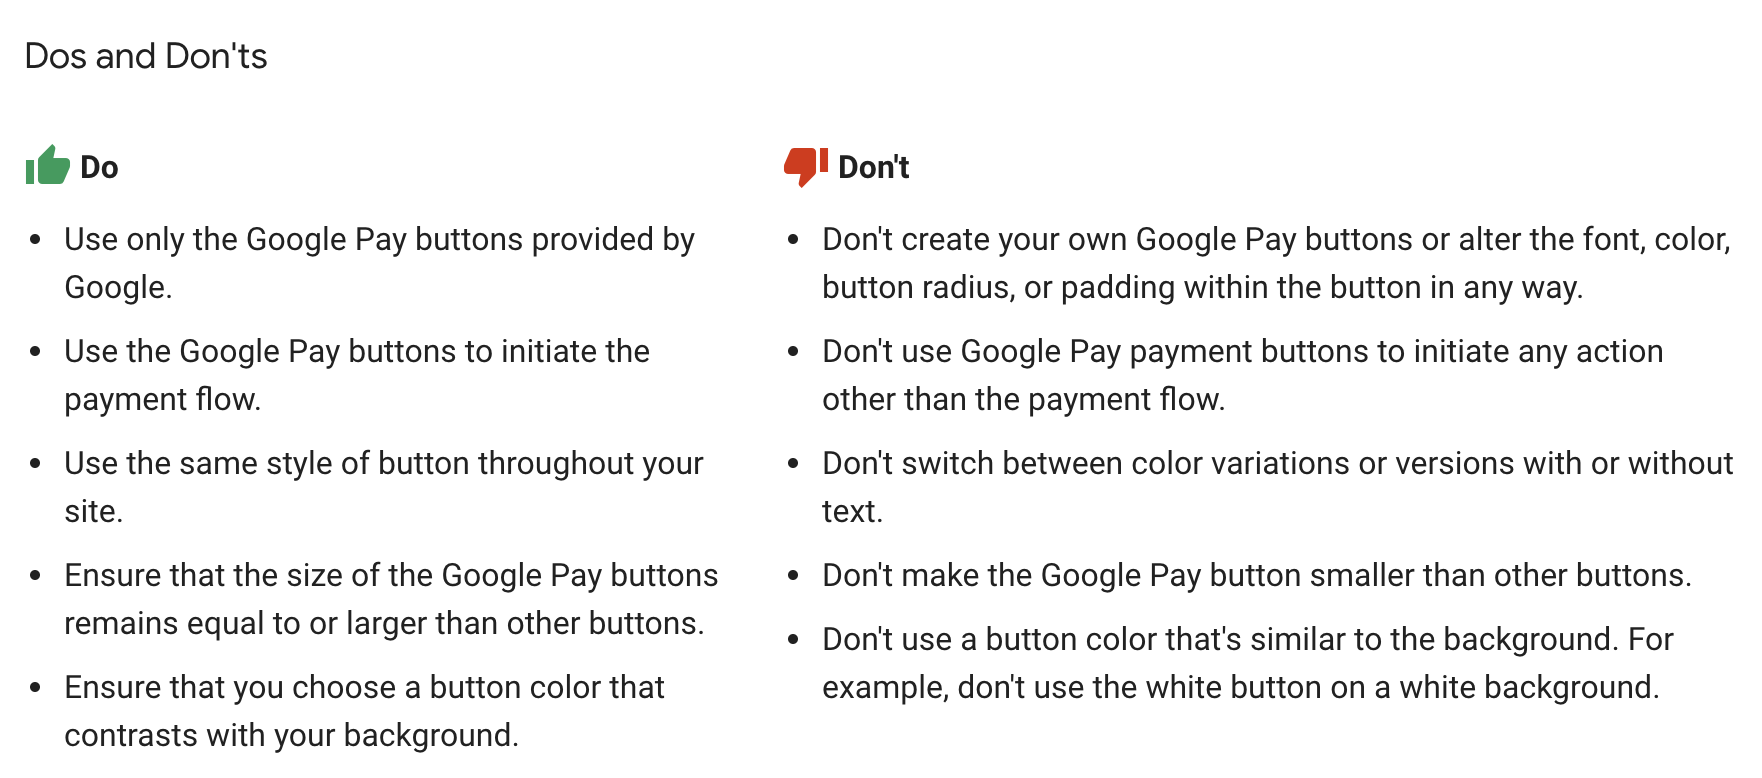 Google brand guidelines · Issue #46 · stripe/stripe-payments